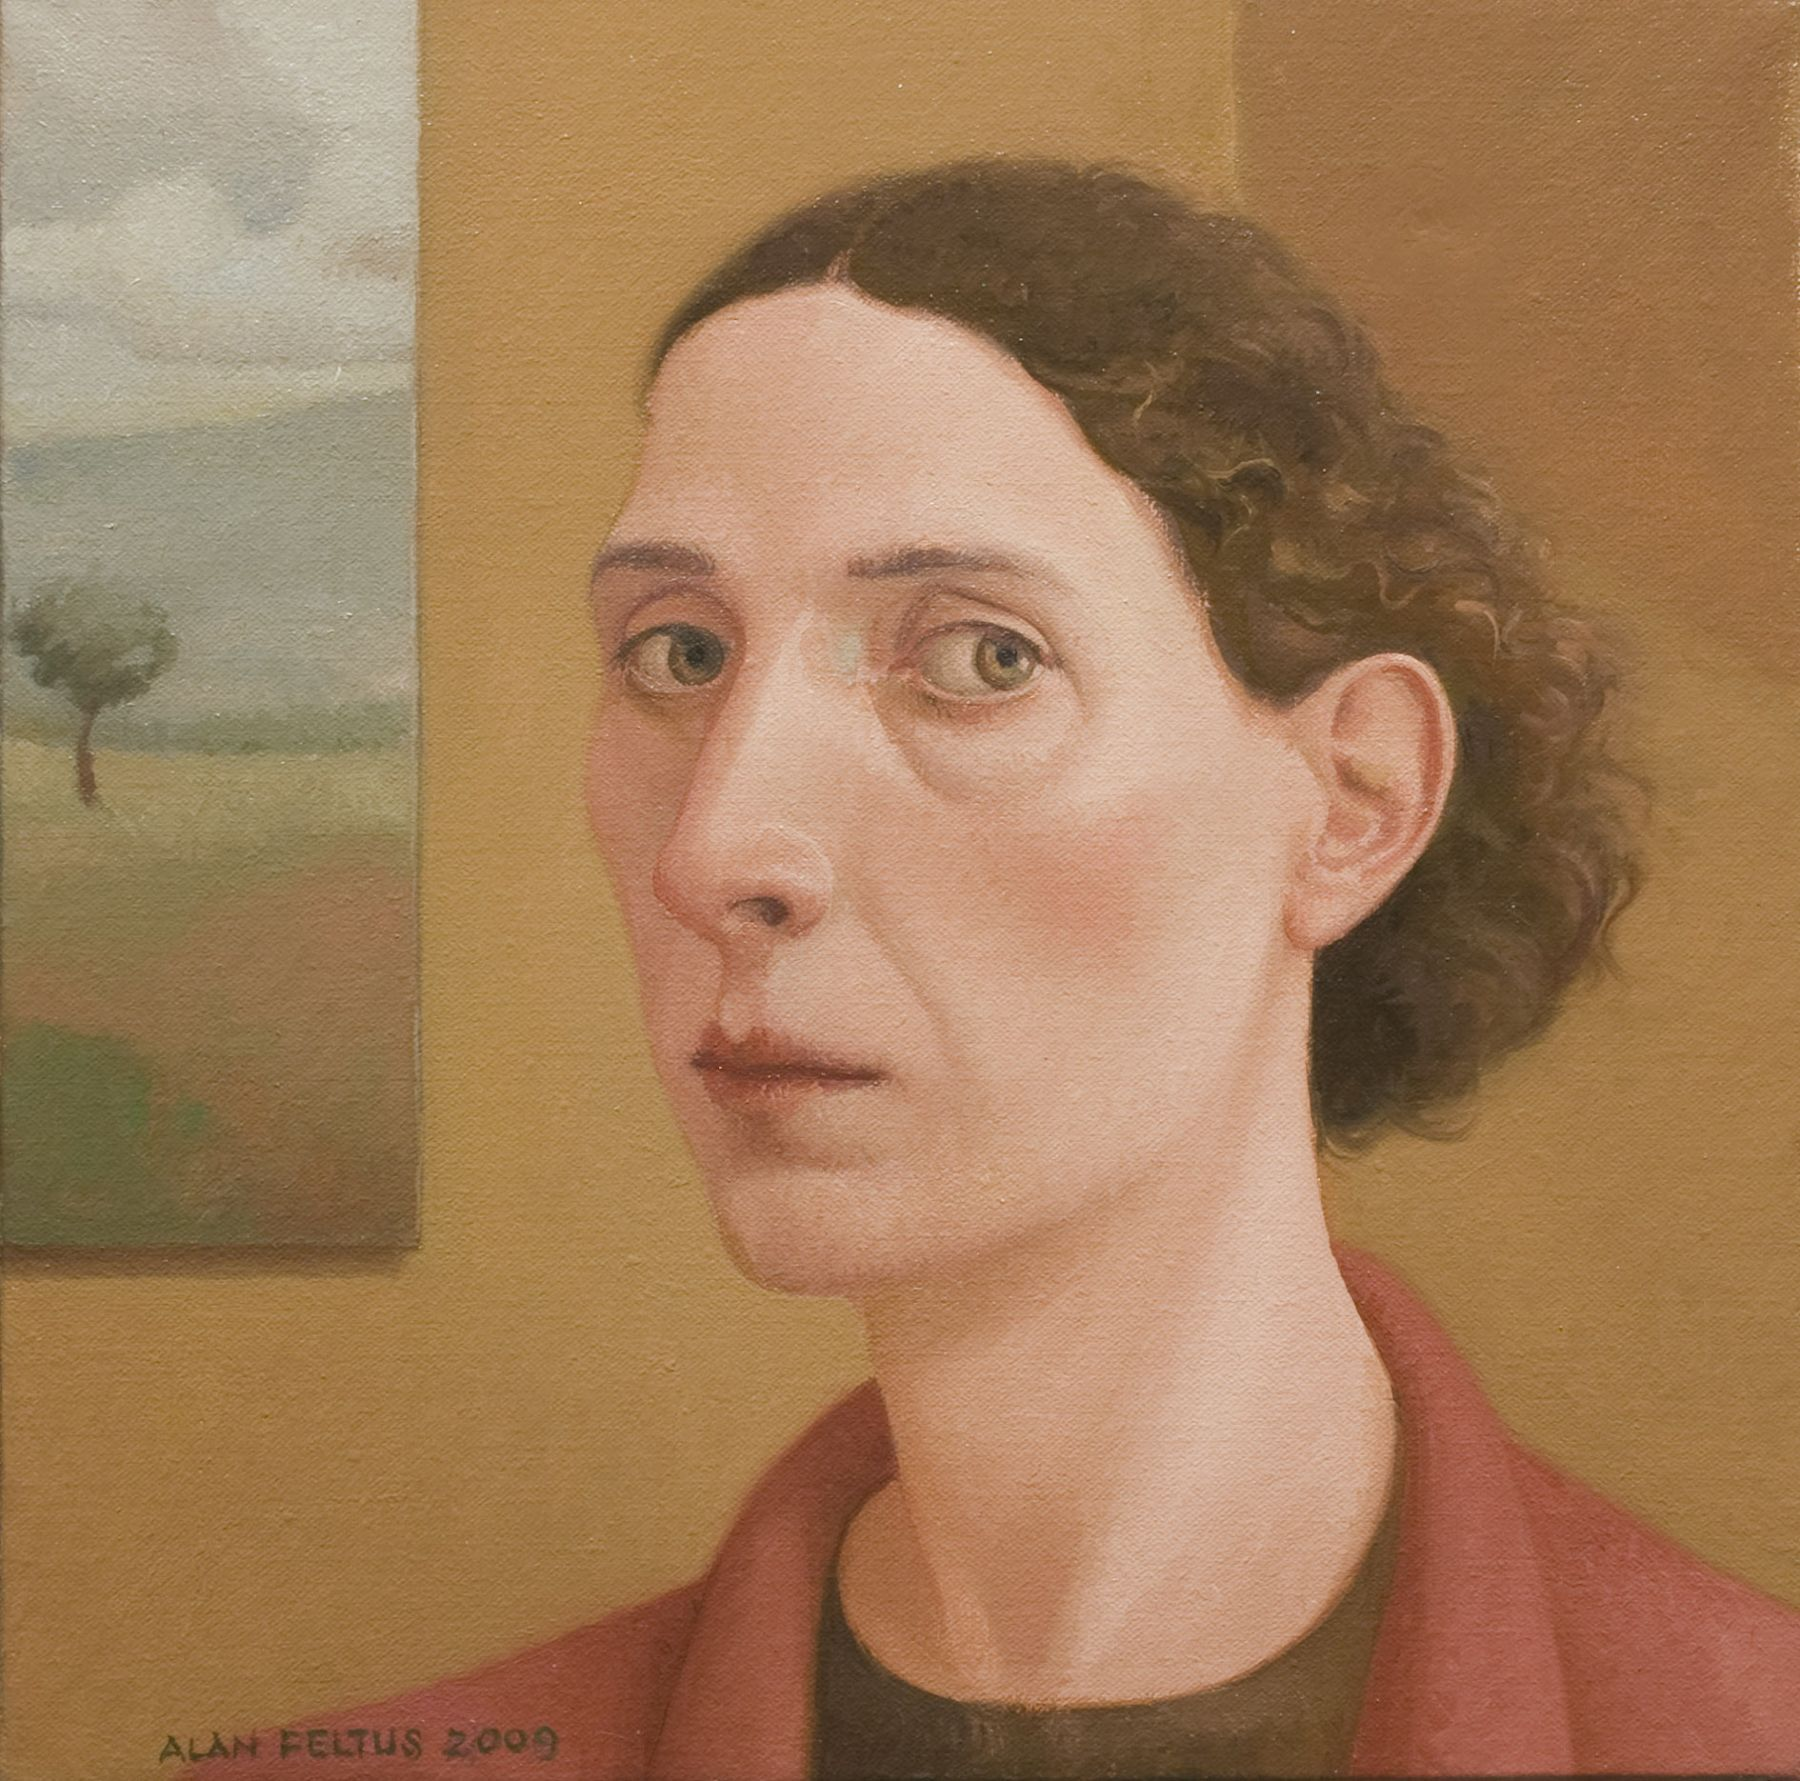 alan feltus, Sandra, 2009, oil on canvas, 13 3/4 x 13 3/4 inches